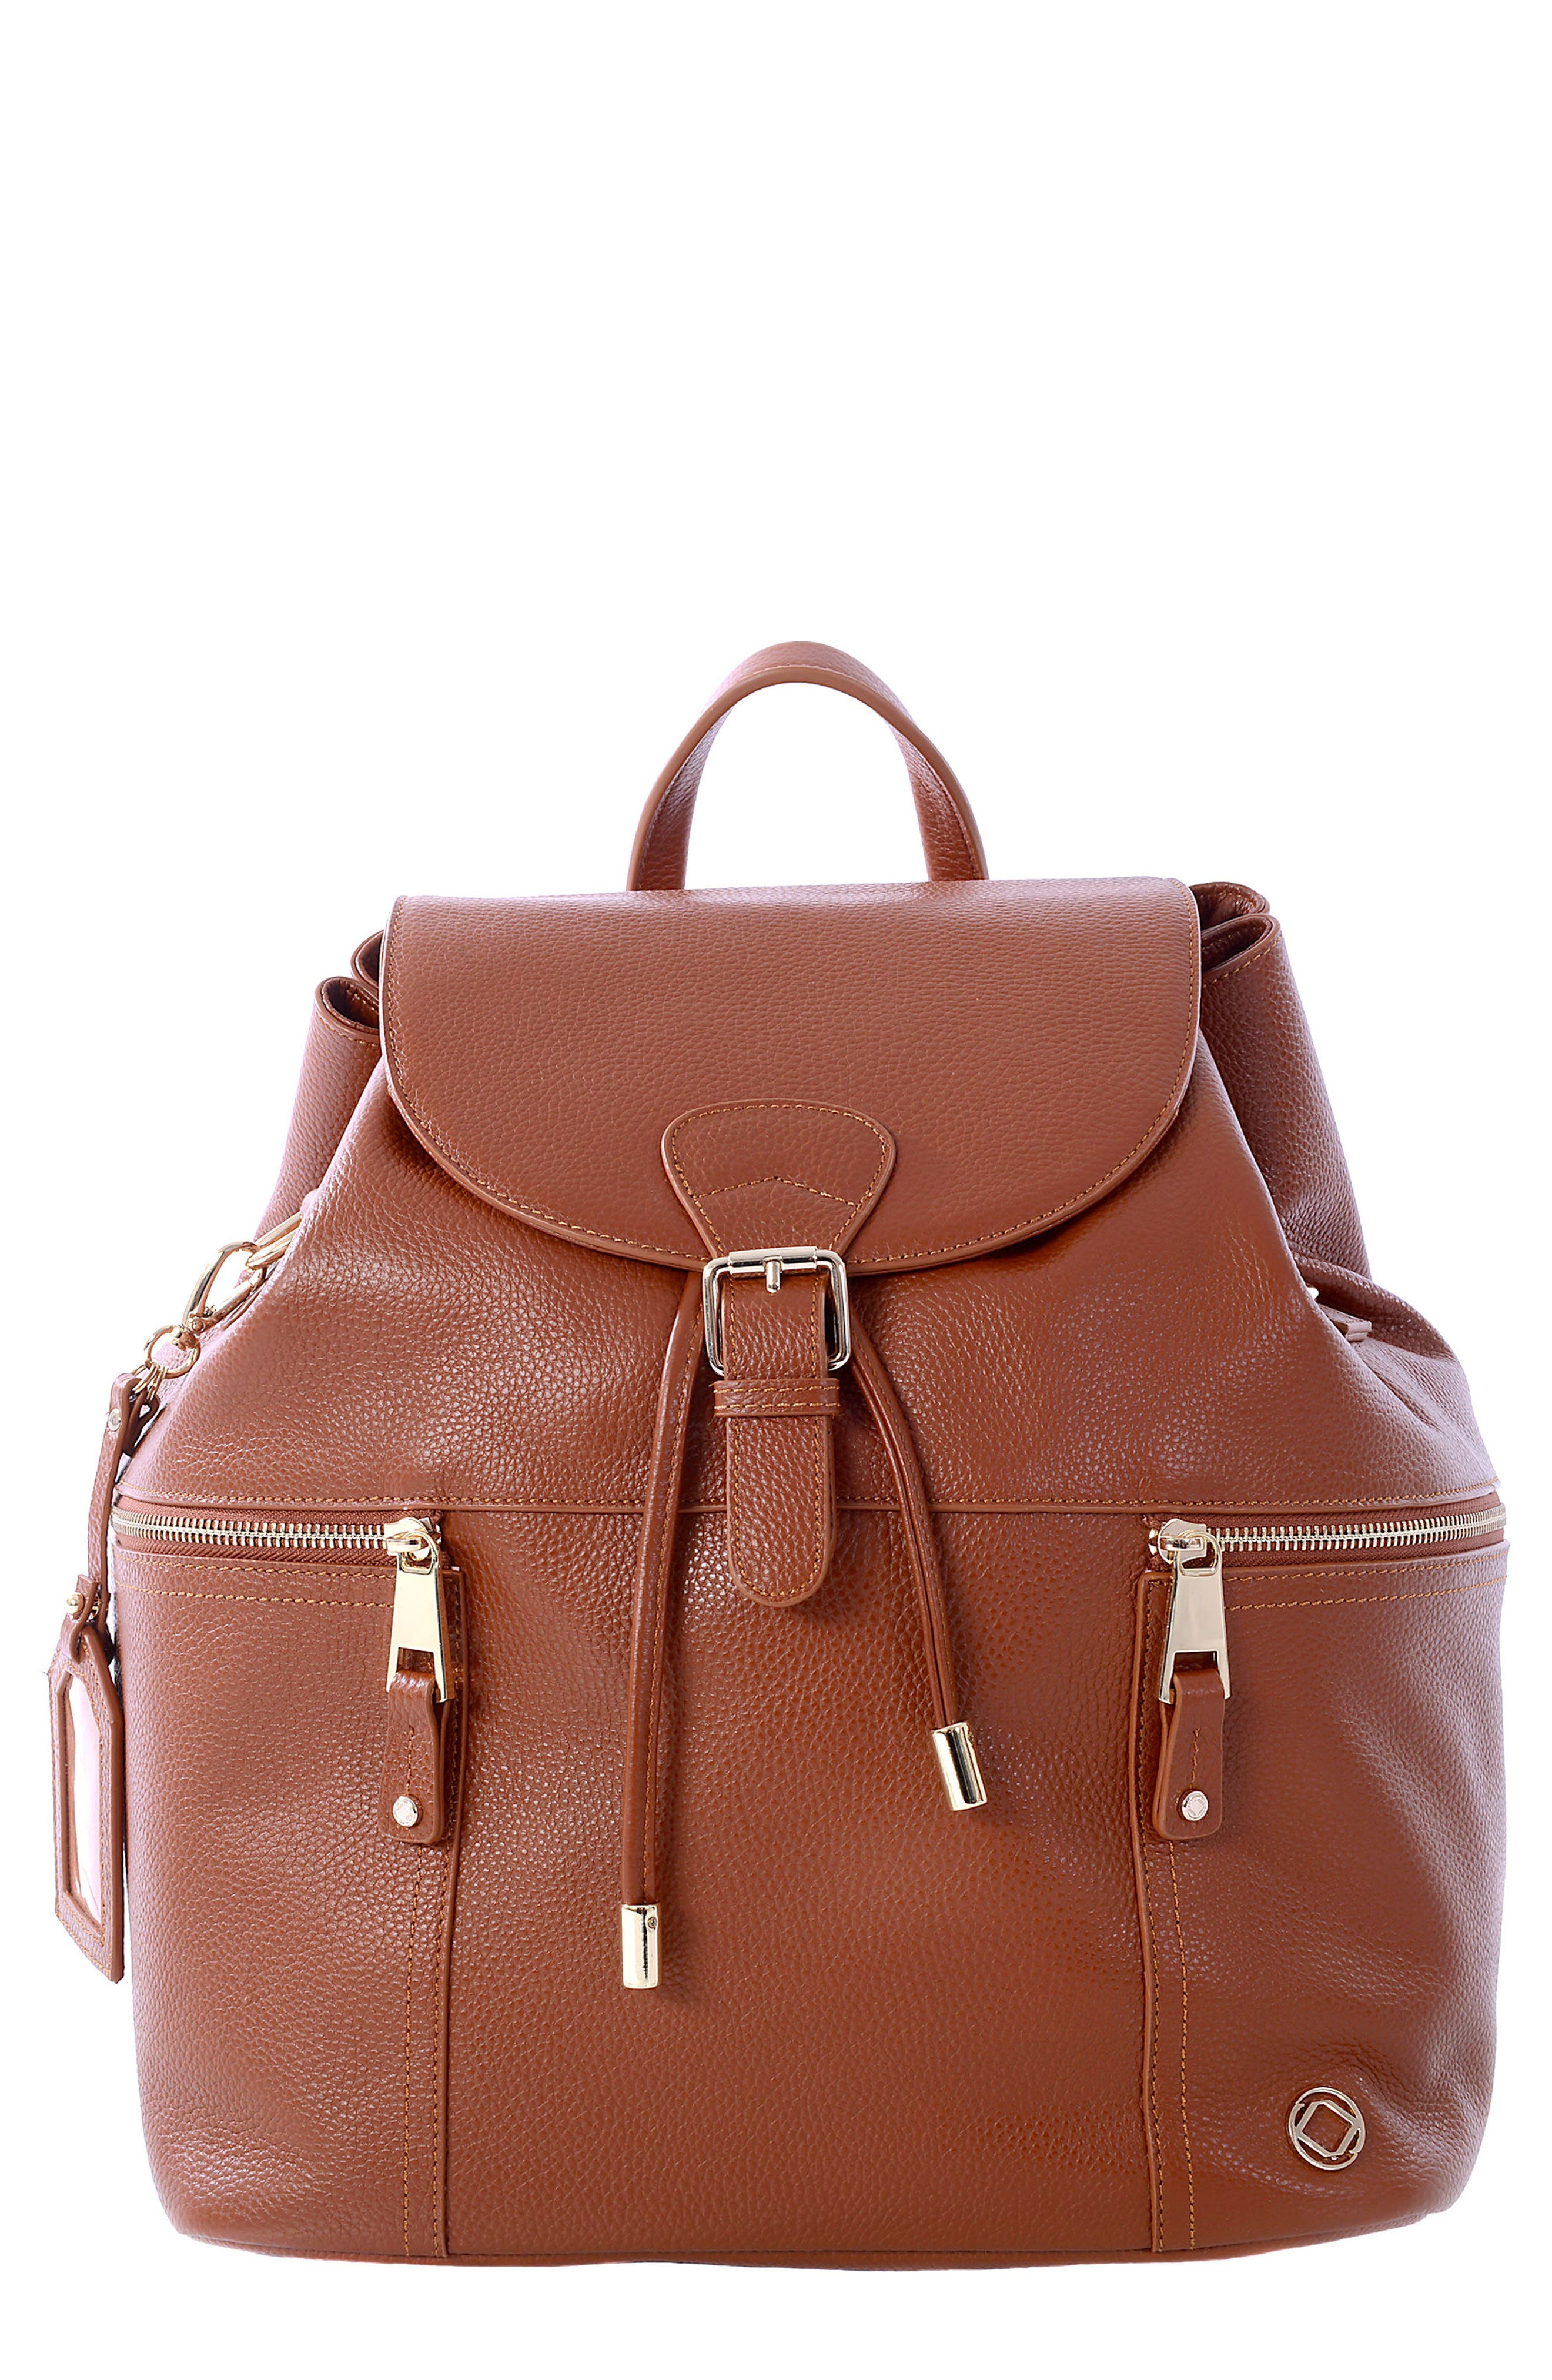 Thor Leather Backpack,                             Main thumbnail 1, color,                             Tan With Light Gold Hardware